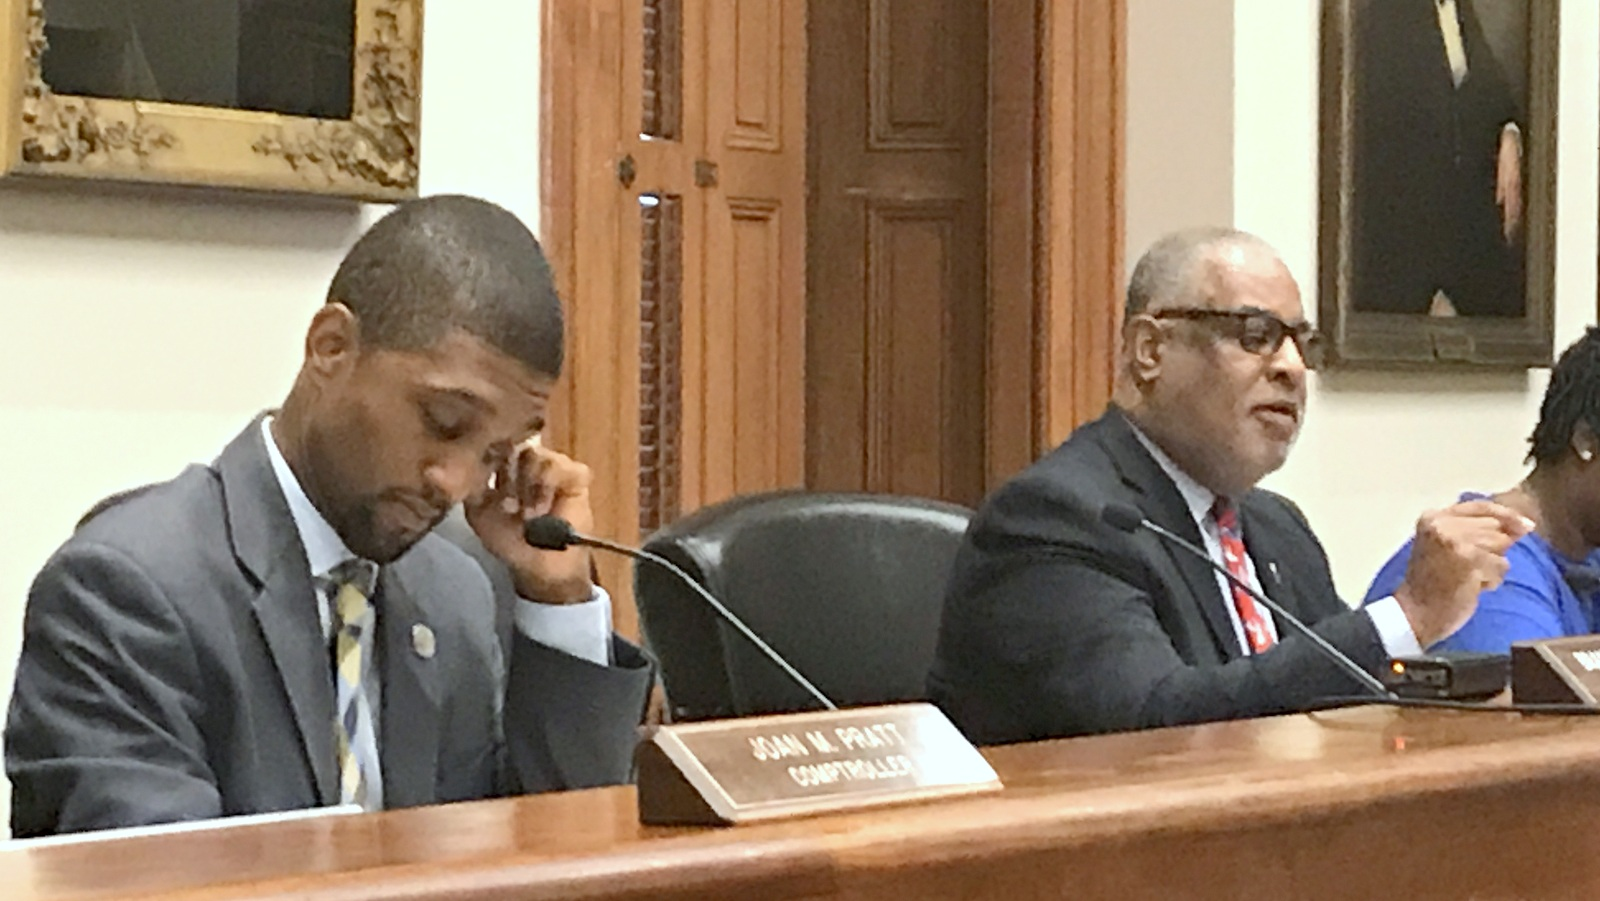 City Solicitor Davis praises a new policy, instituted yesterday, in which victims of police mistreatment can testify when the settlement of their lawsuits come up for BOE approval. (Mark Reutter)